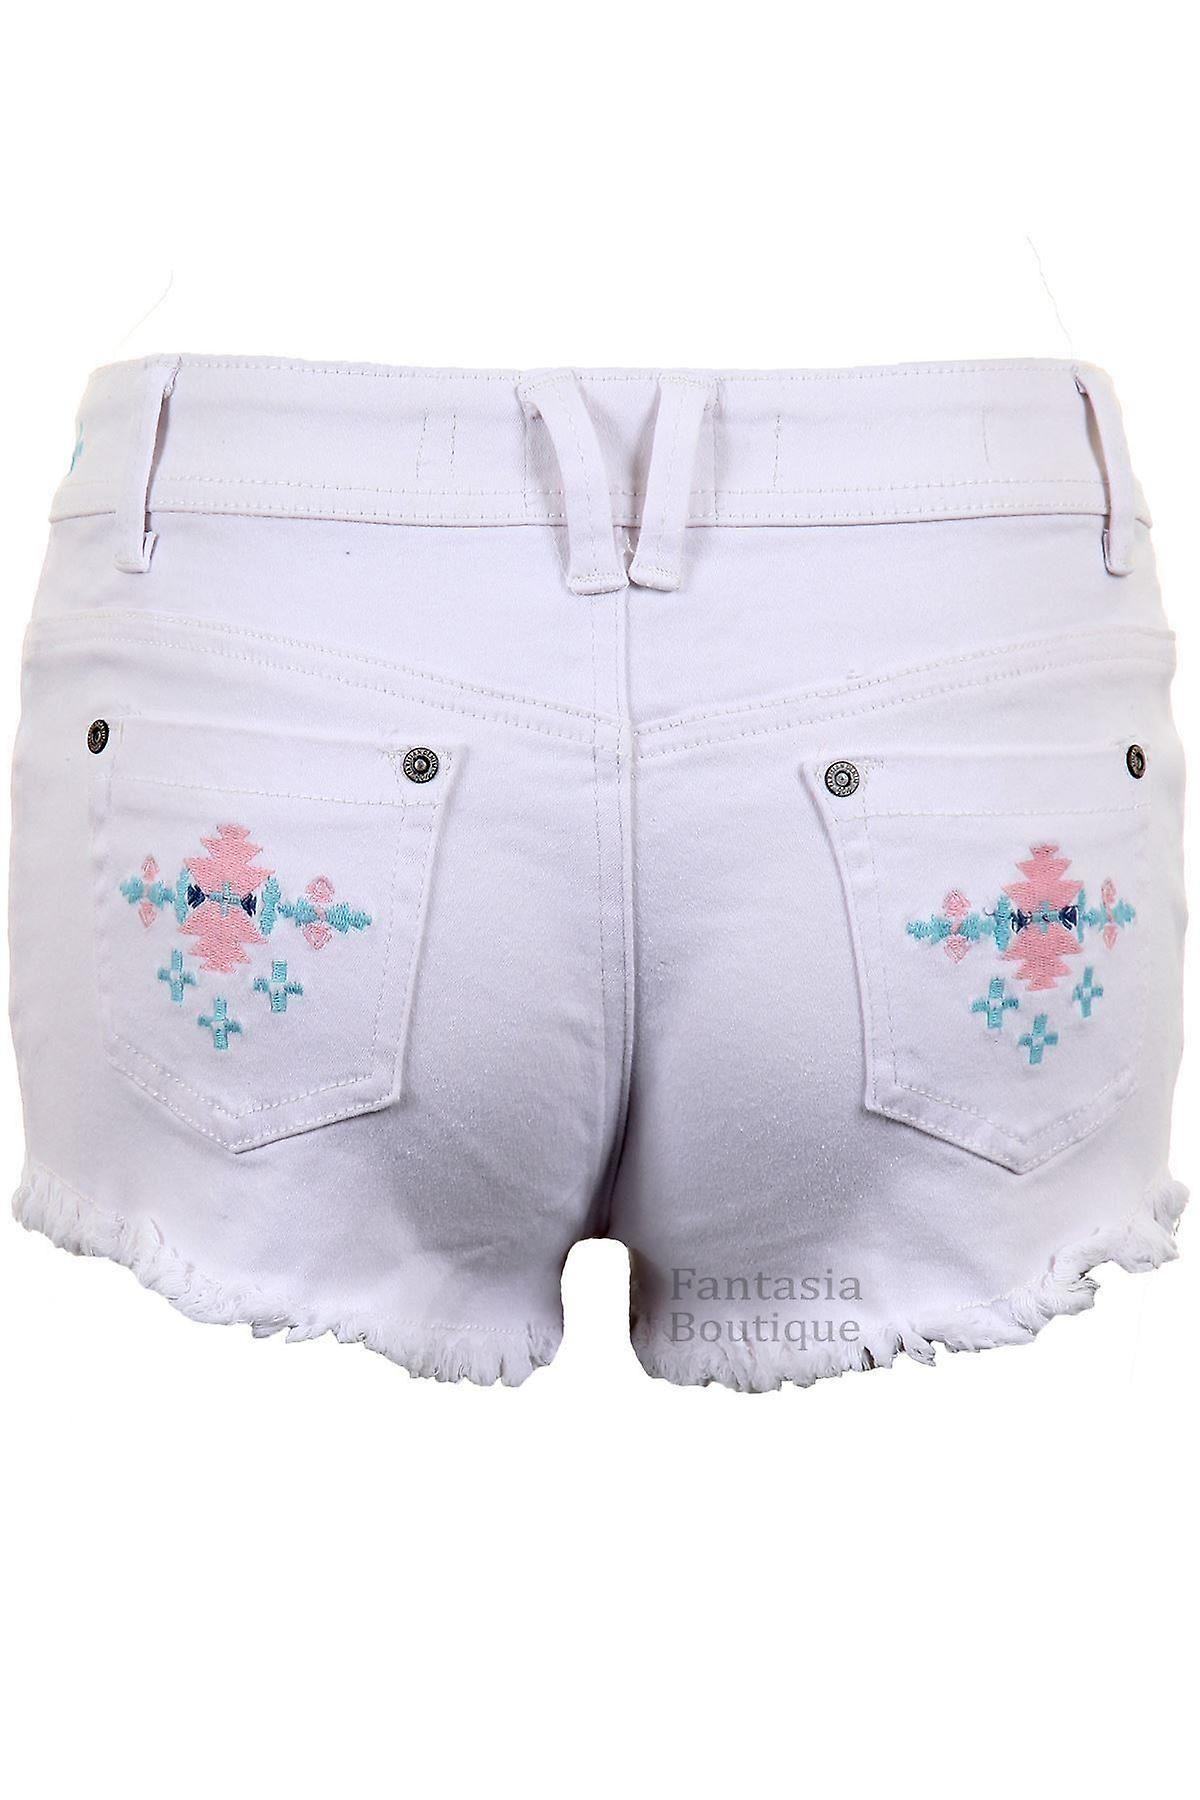 Ladies Denim Pastel Coloured Aztec Summer Shorts Women's Fitted Hotpants